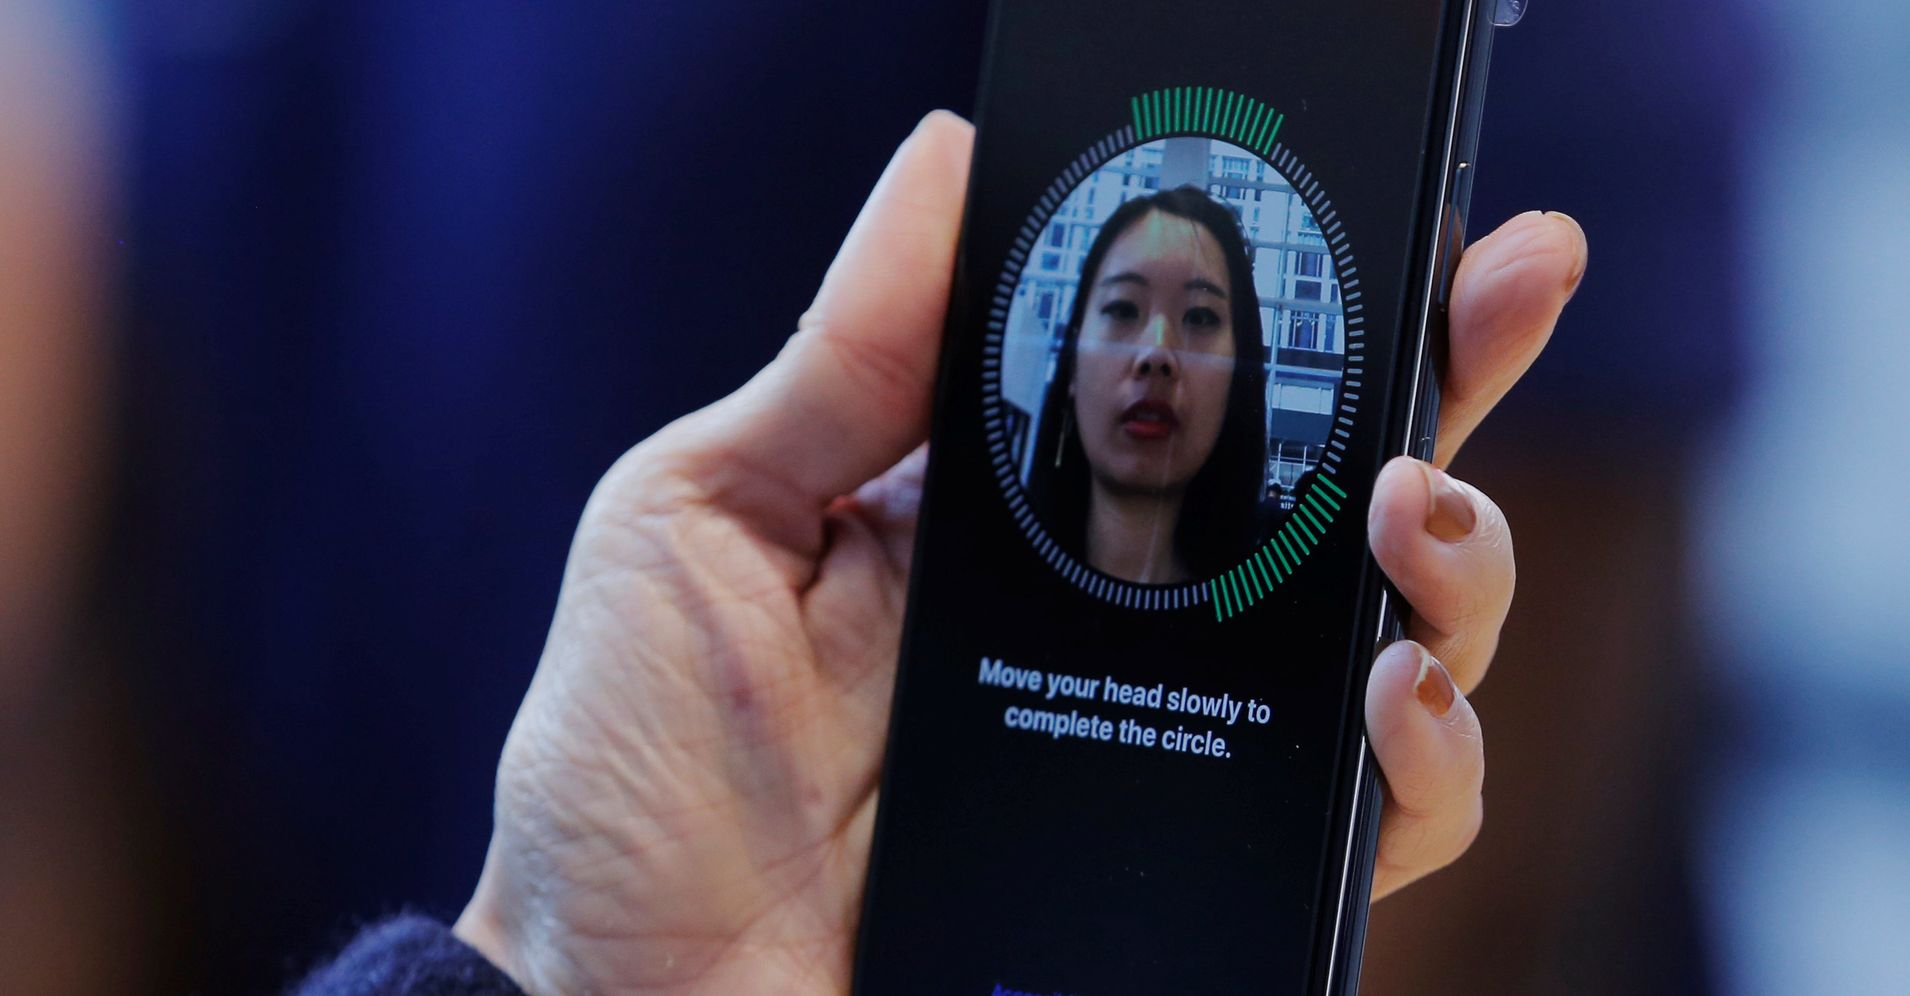 Worker Says Colleague Faked Out Her iPhone X Facial Recognition ID